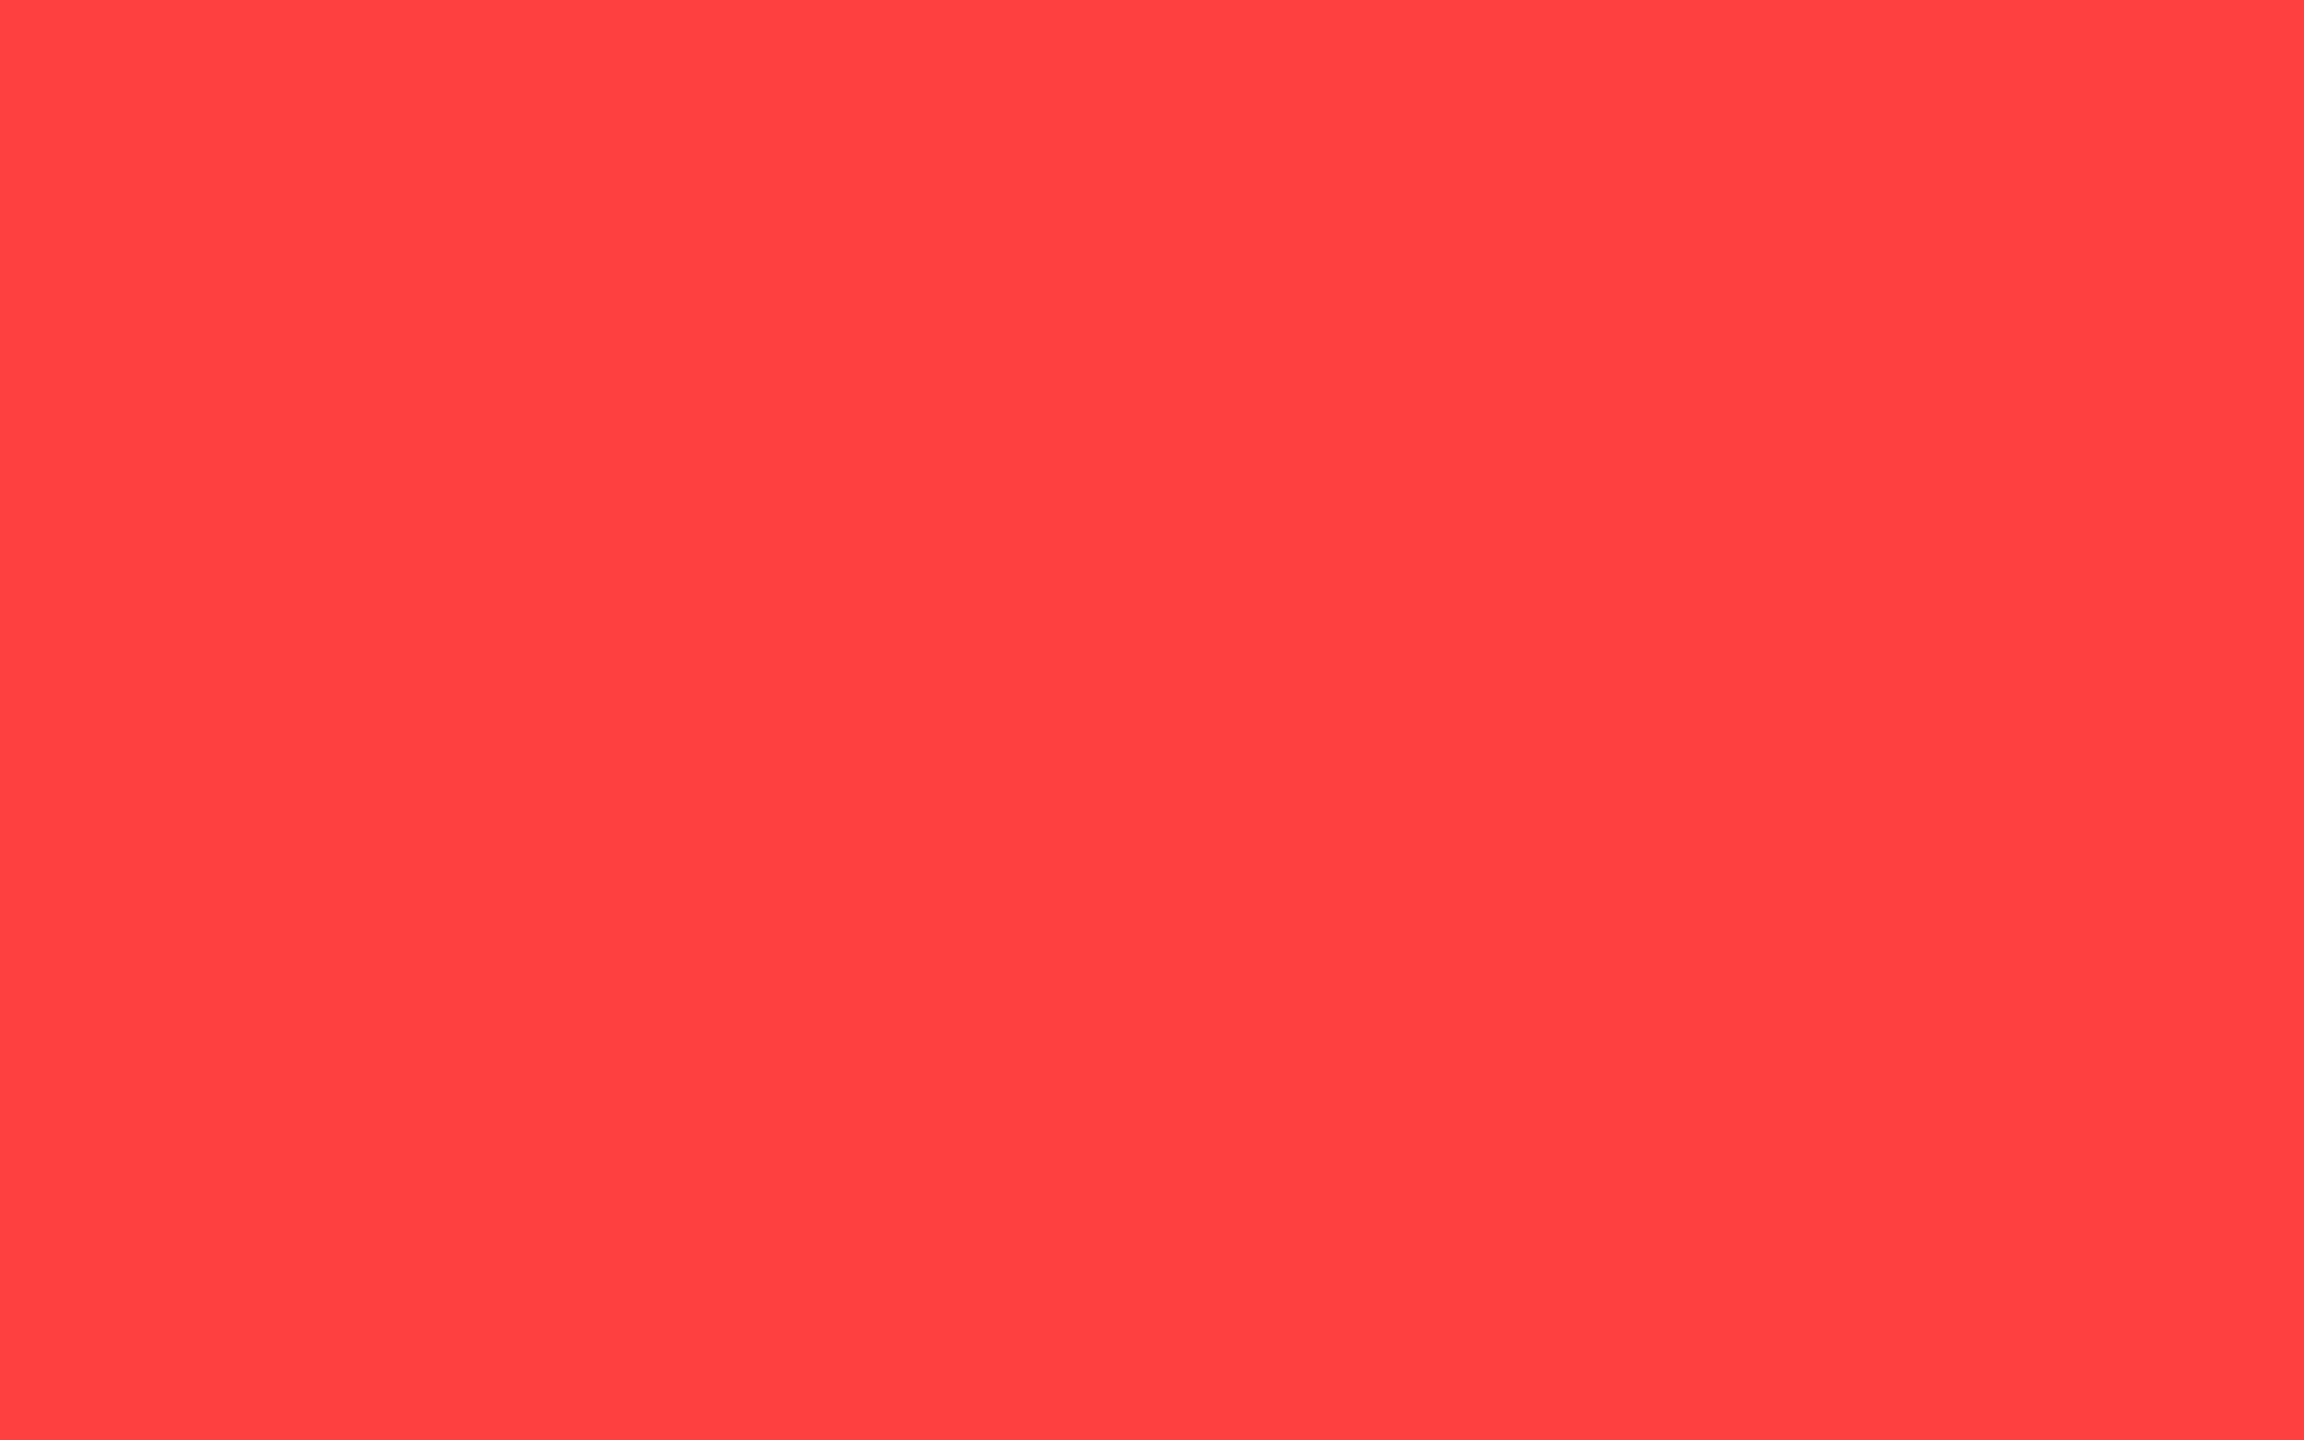 2304x1440 Coral Red Solid Color Background